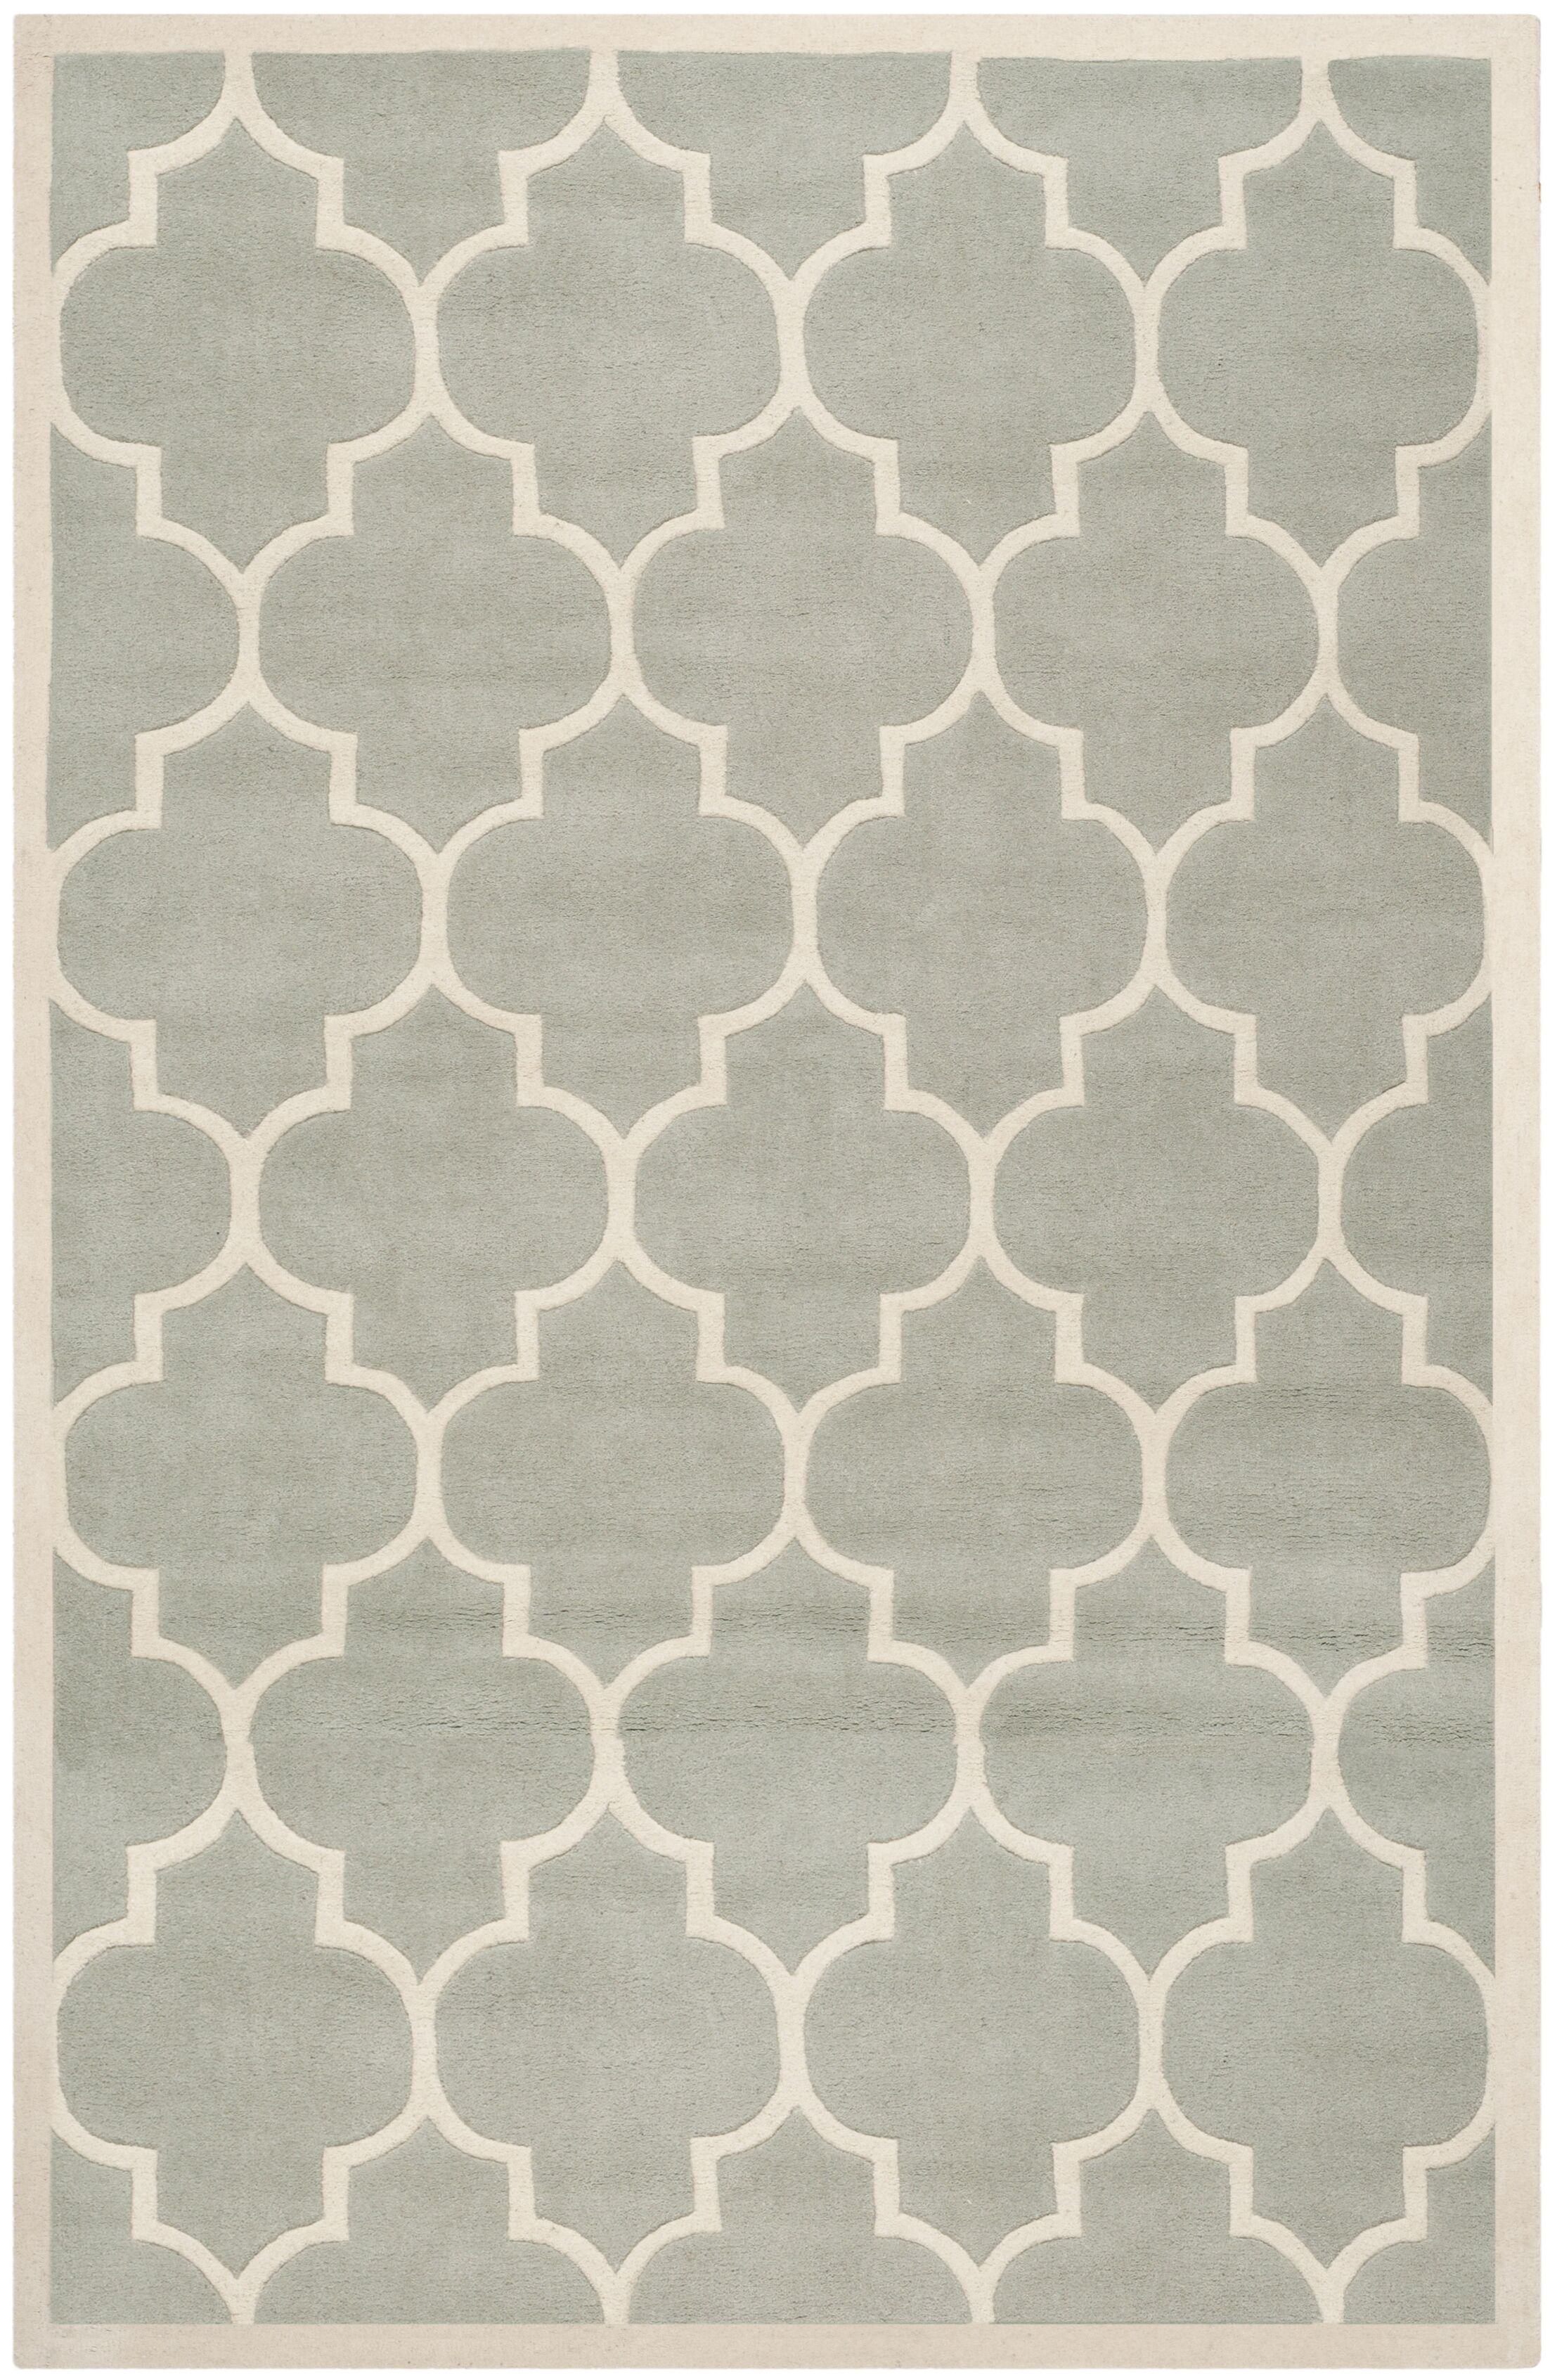 Wilkin Hand-Tufted Gray/Ivory Area Rug Rug Size: Rectangle 8' x 10'